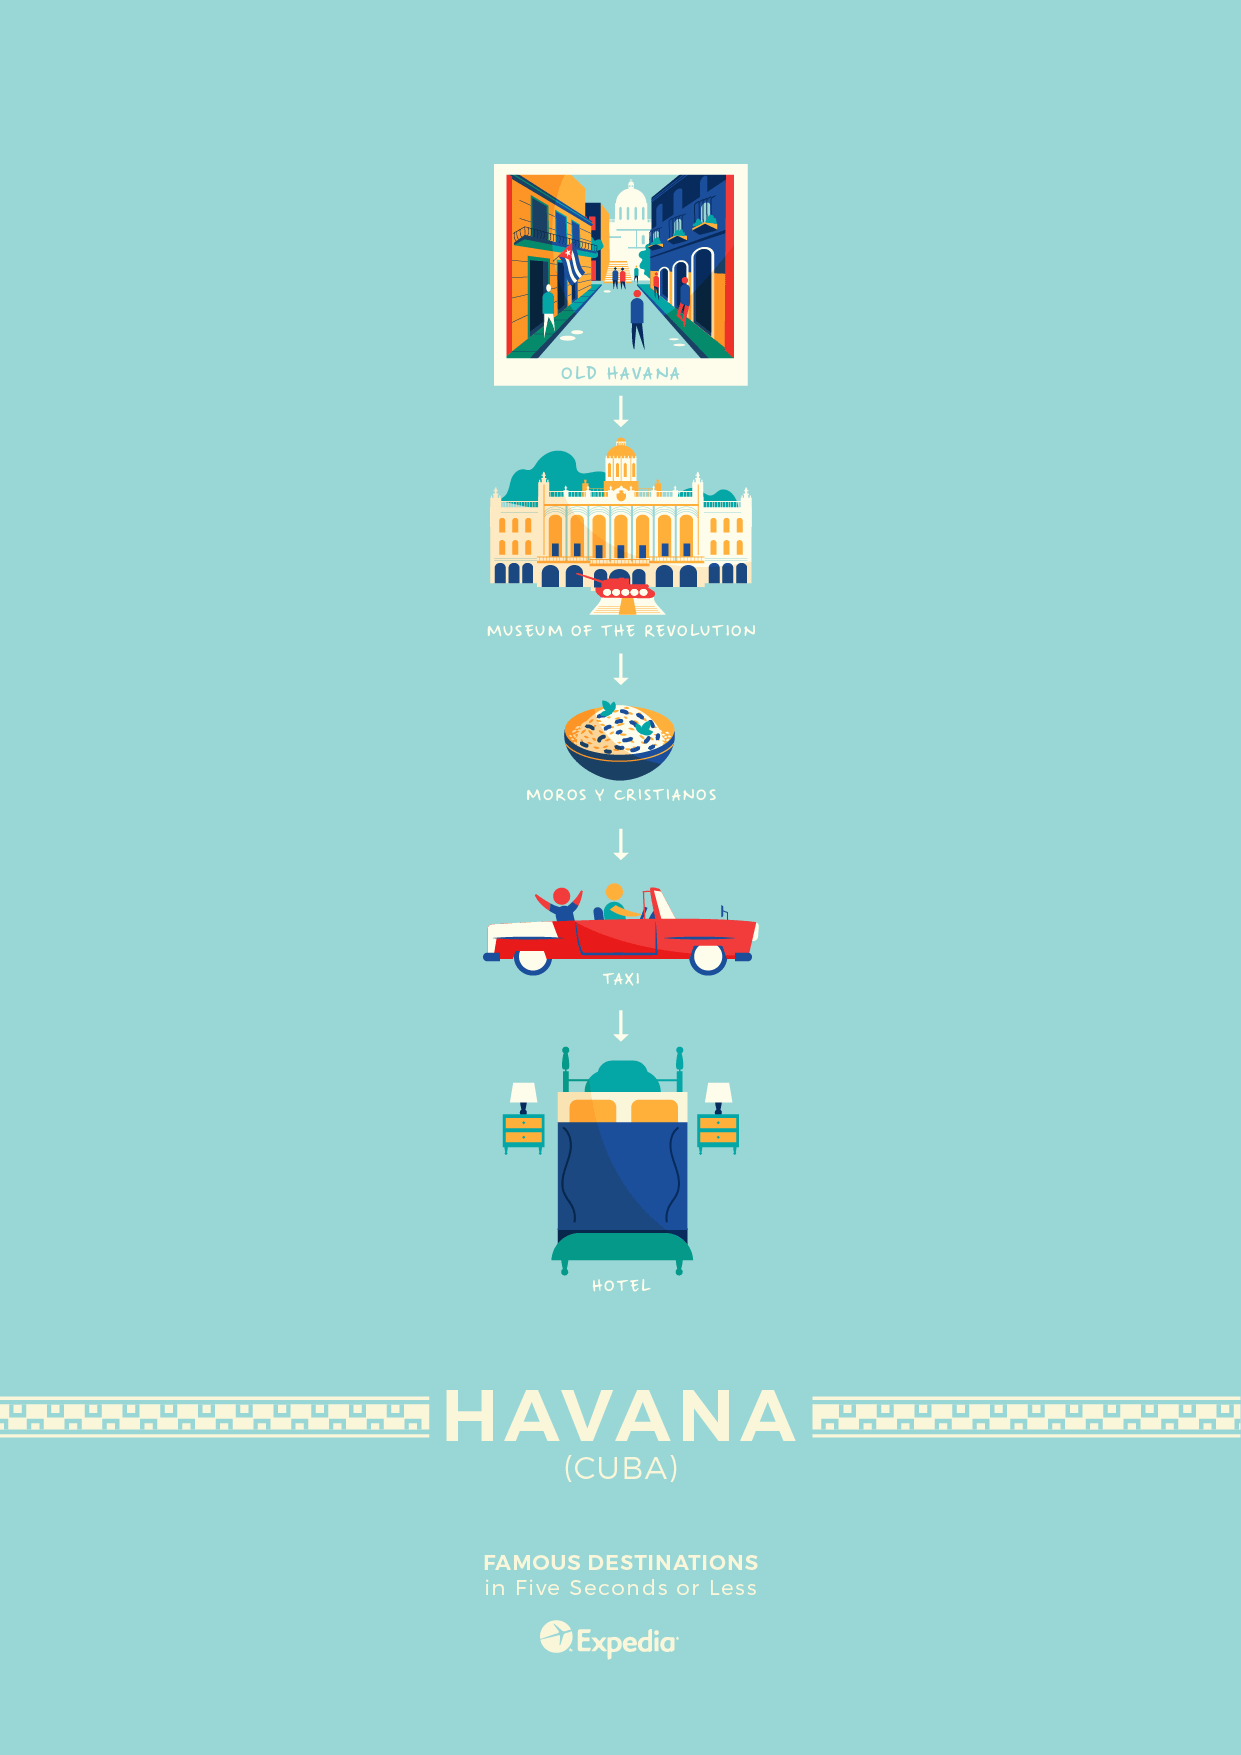 Havana travel poster elevator pitch